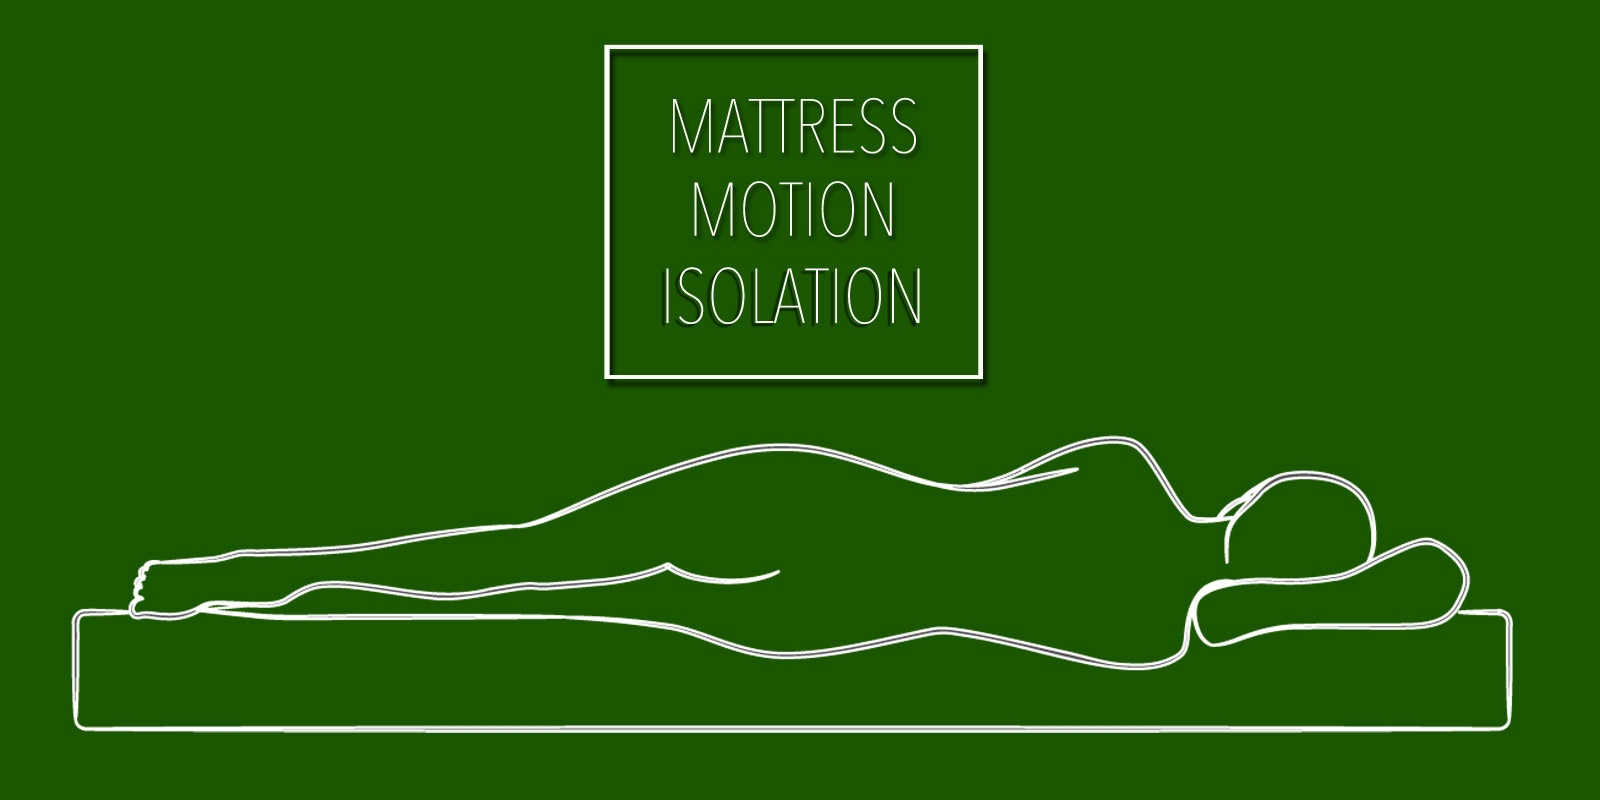 Mattress Motion Isolation